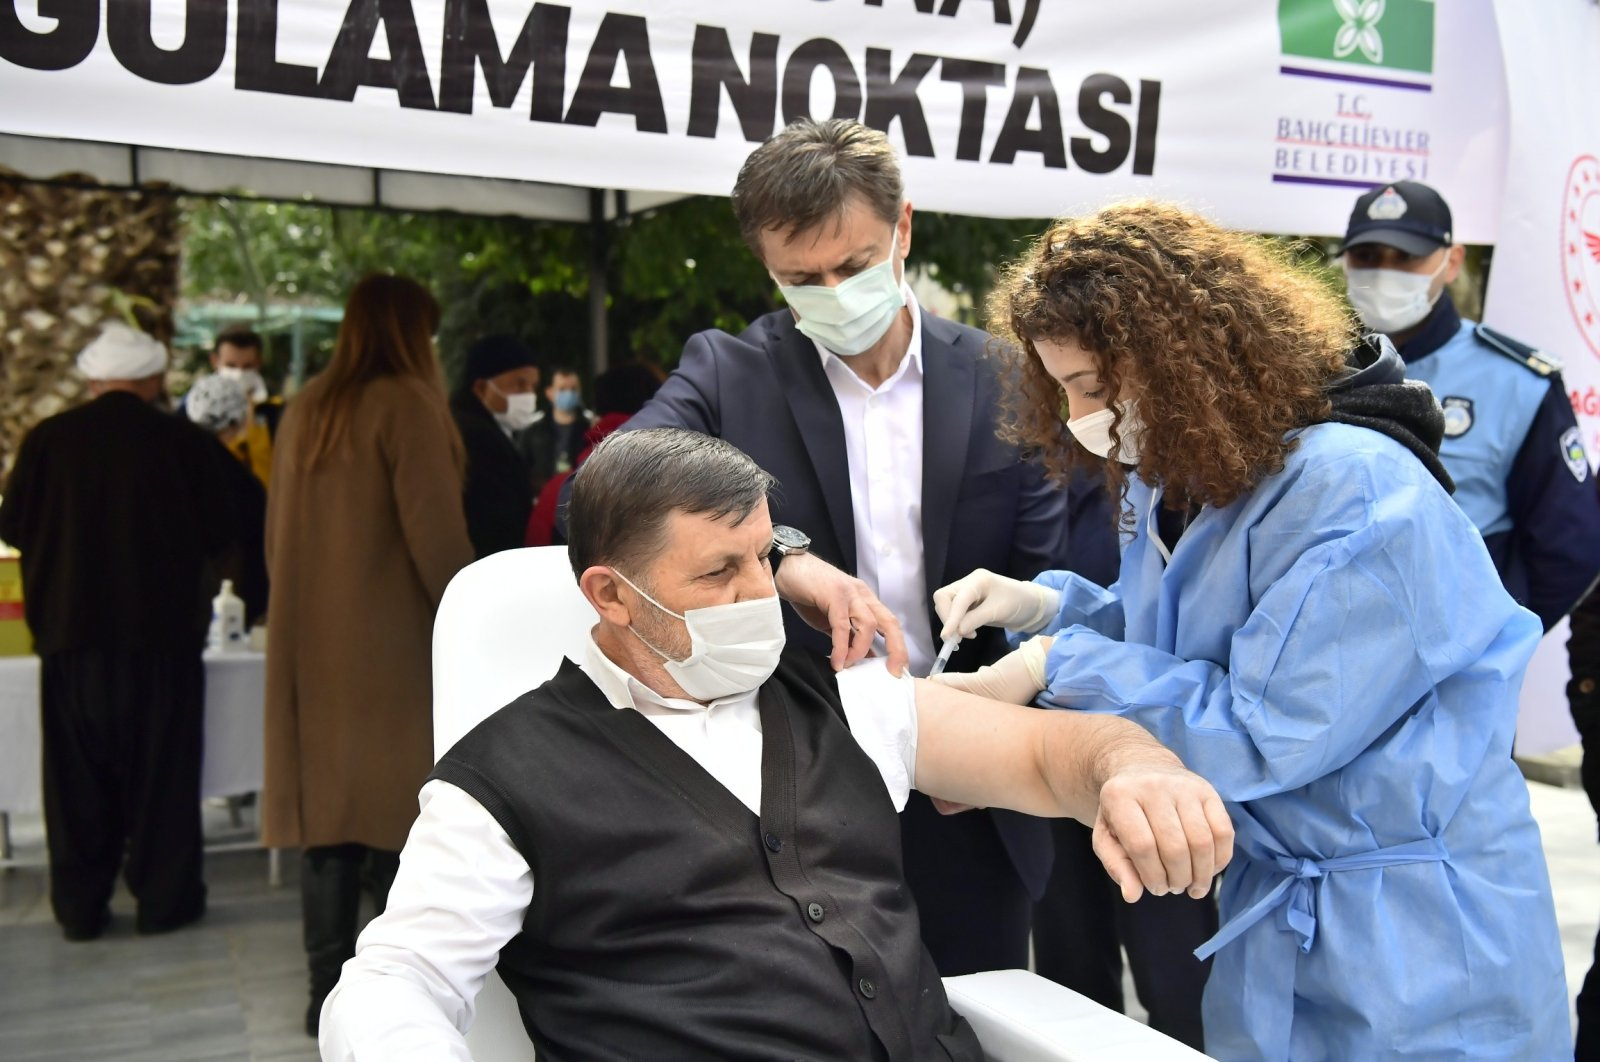 A man gets vaccinated at a vaccination site in Bahçelievler district, in Istanbul, Turkey, Mar. 13, 2021. (İHA PHOTO)